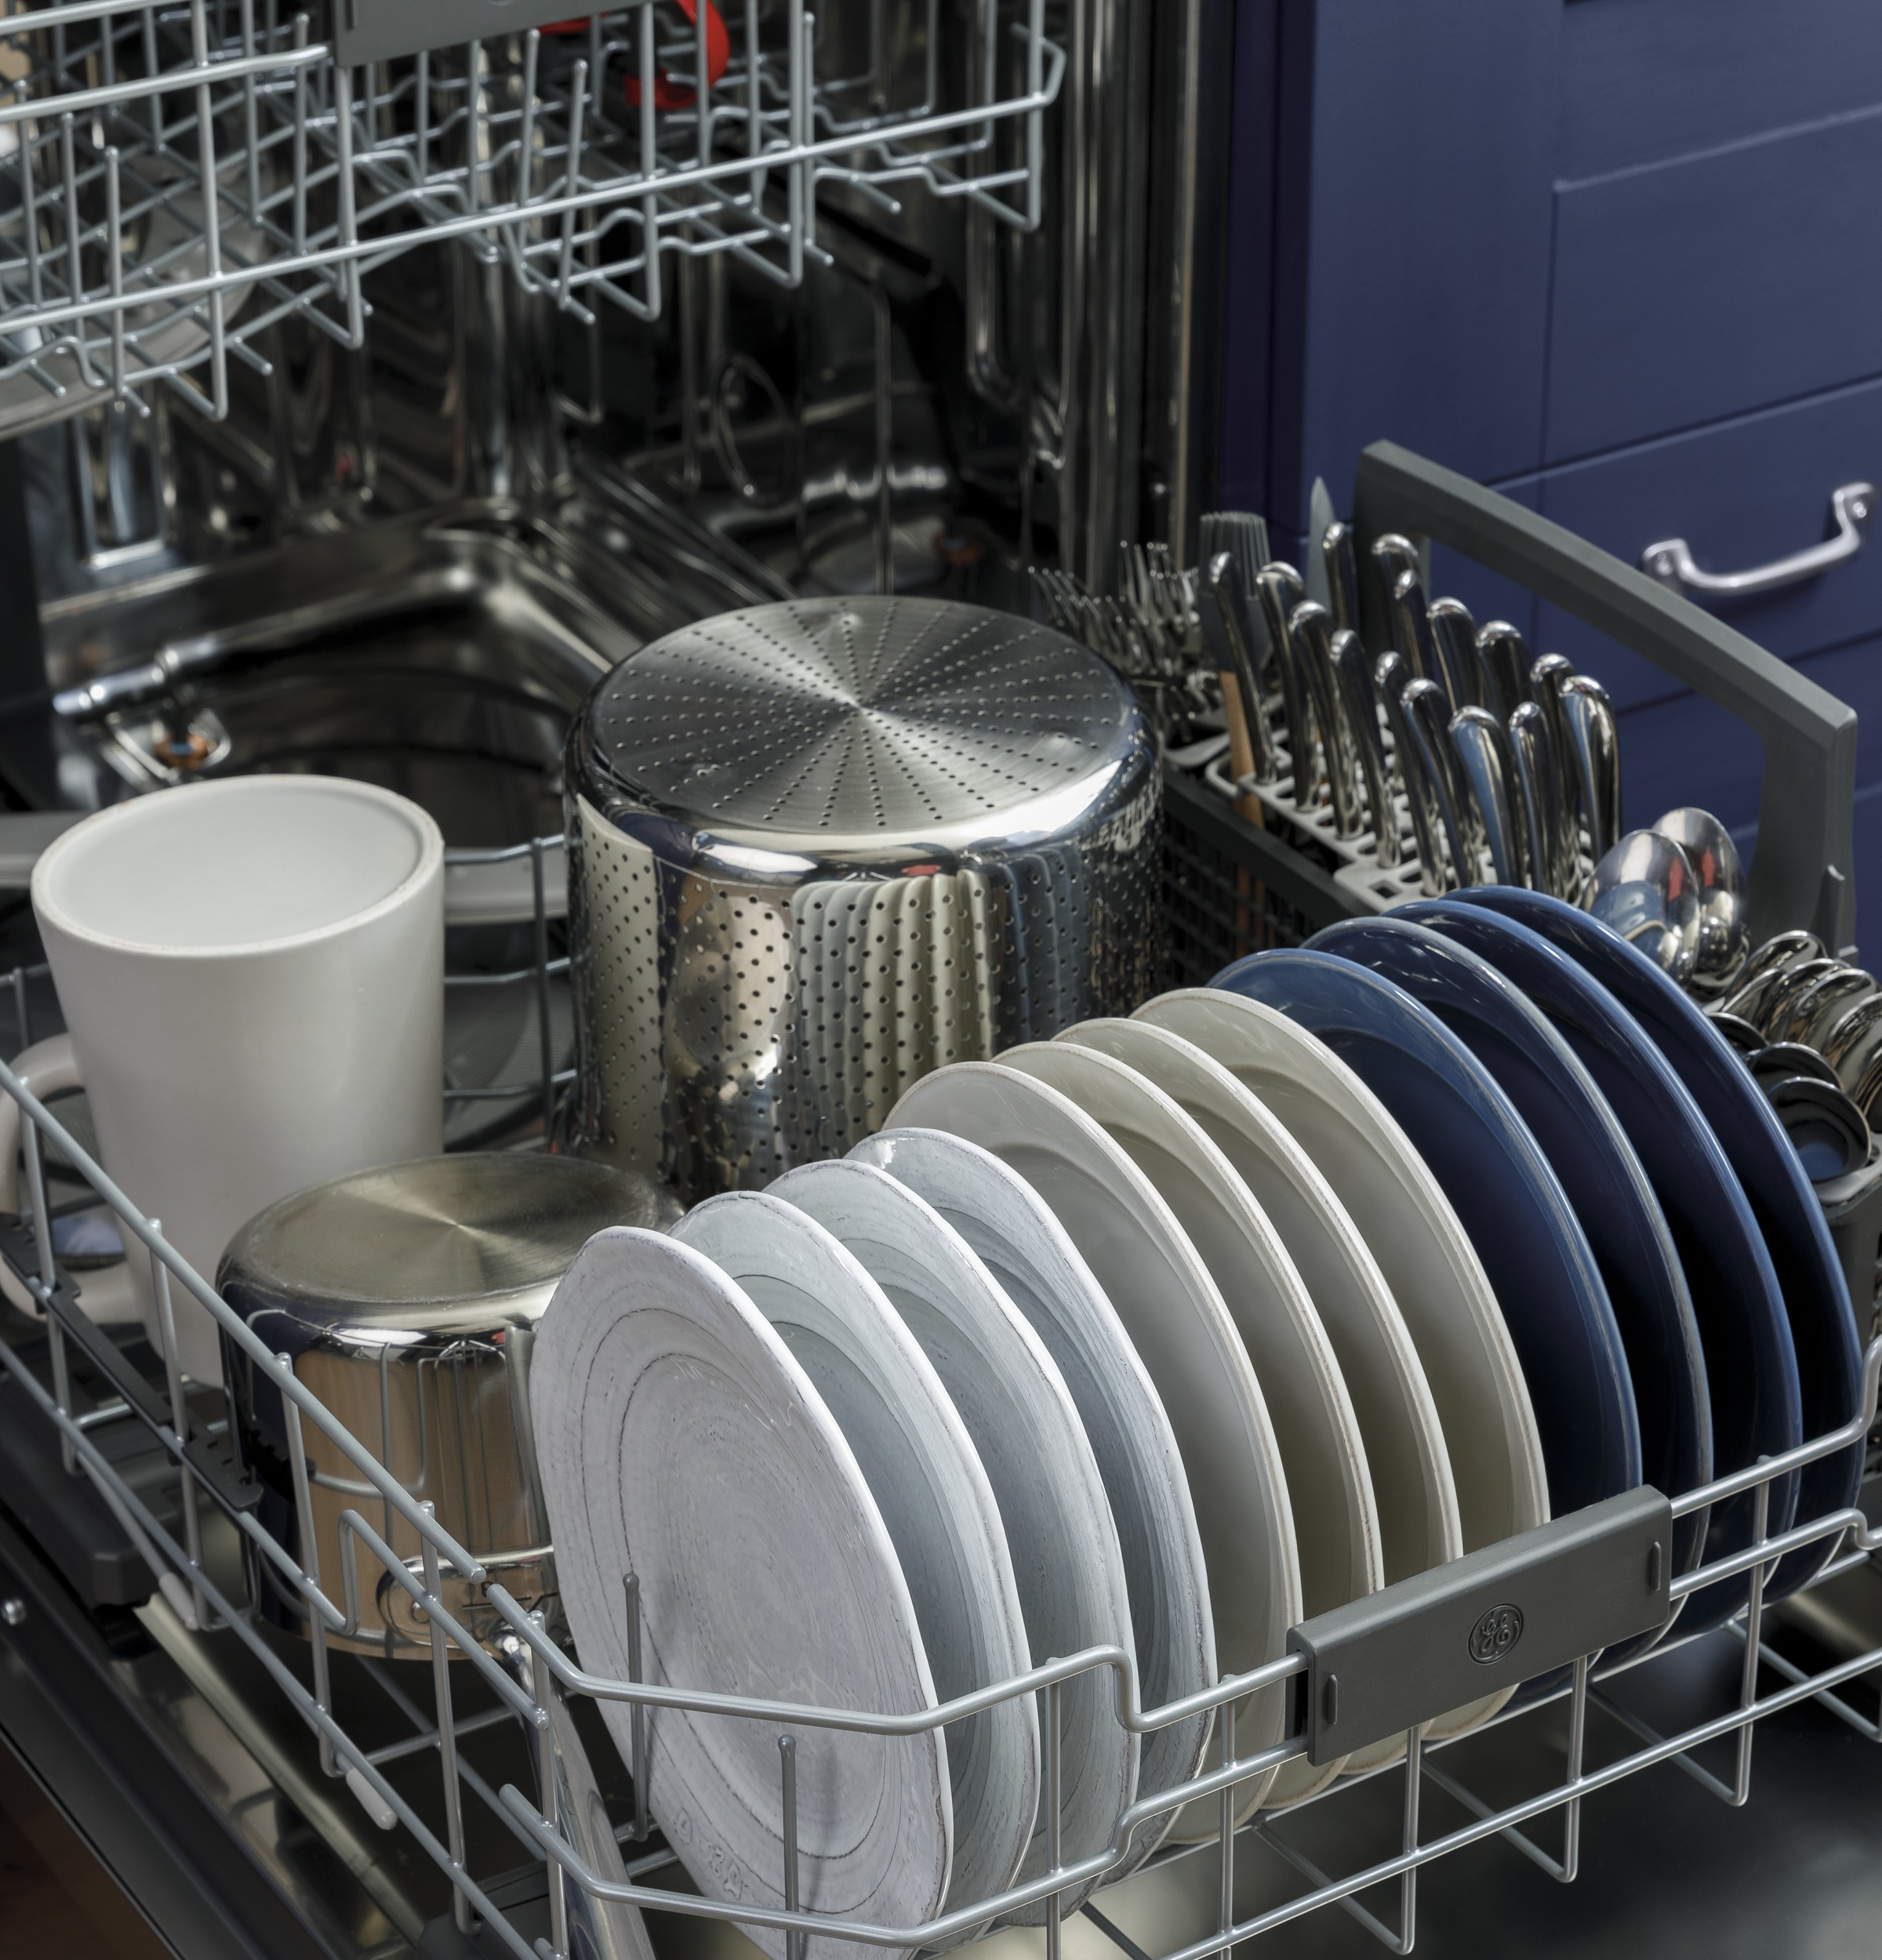 Model: GDT645SGNWW | GE GE® Top Control with Stainless Steel Interior Dishwasher with Sanitize Cycle & Dry Boost with Fan Assist